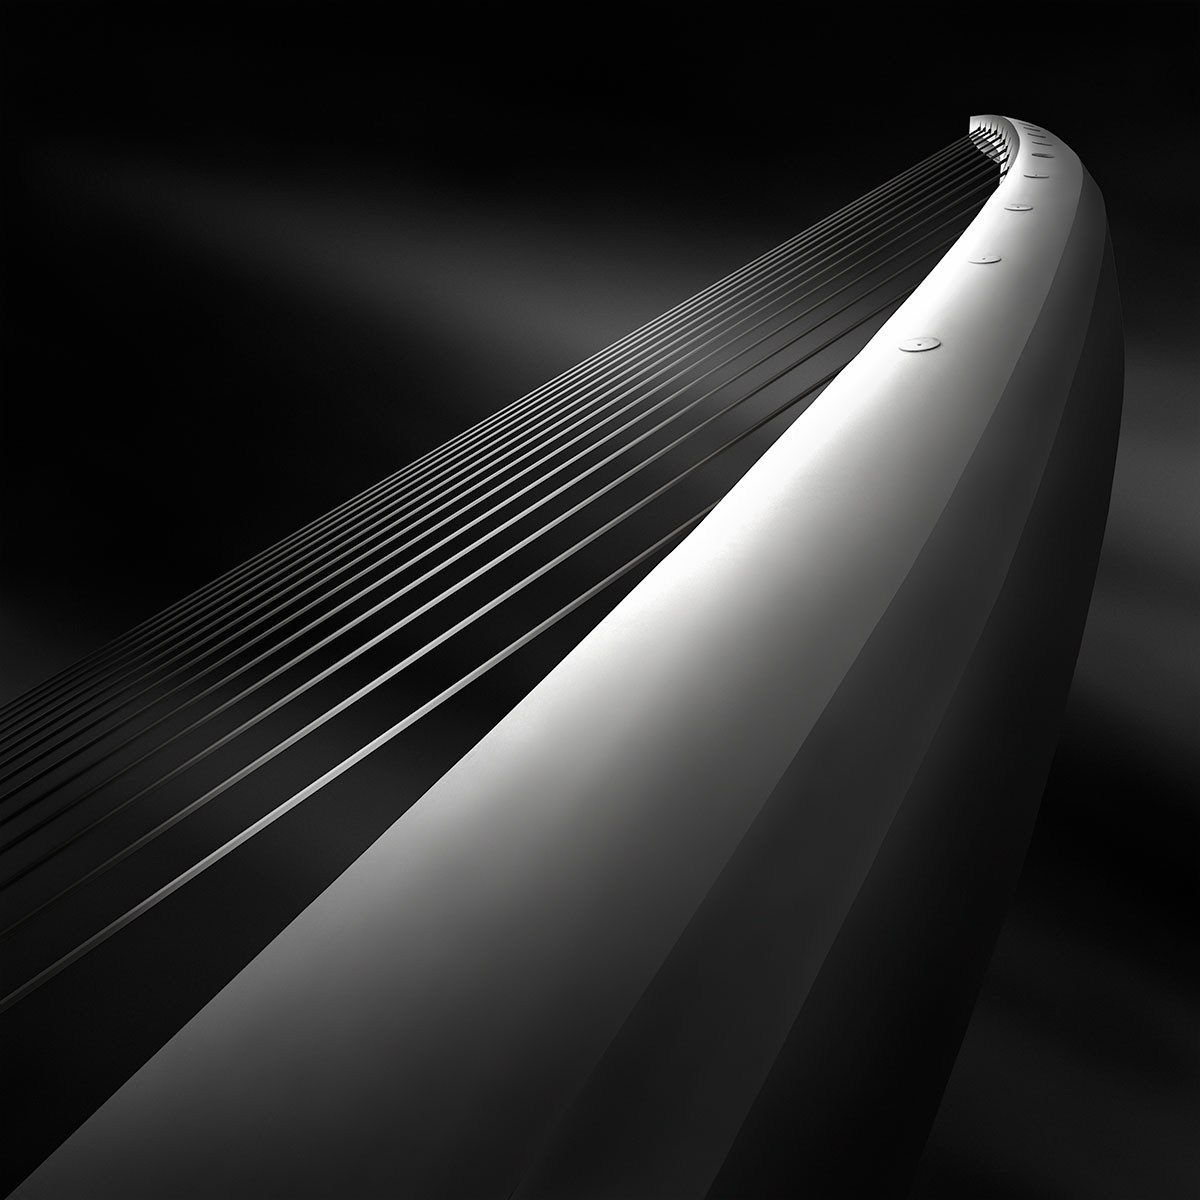 Like A Harp's Strings III - Rising - Calatrava Bridge Athens © Julia Anna Gospodarou 2012